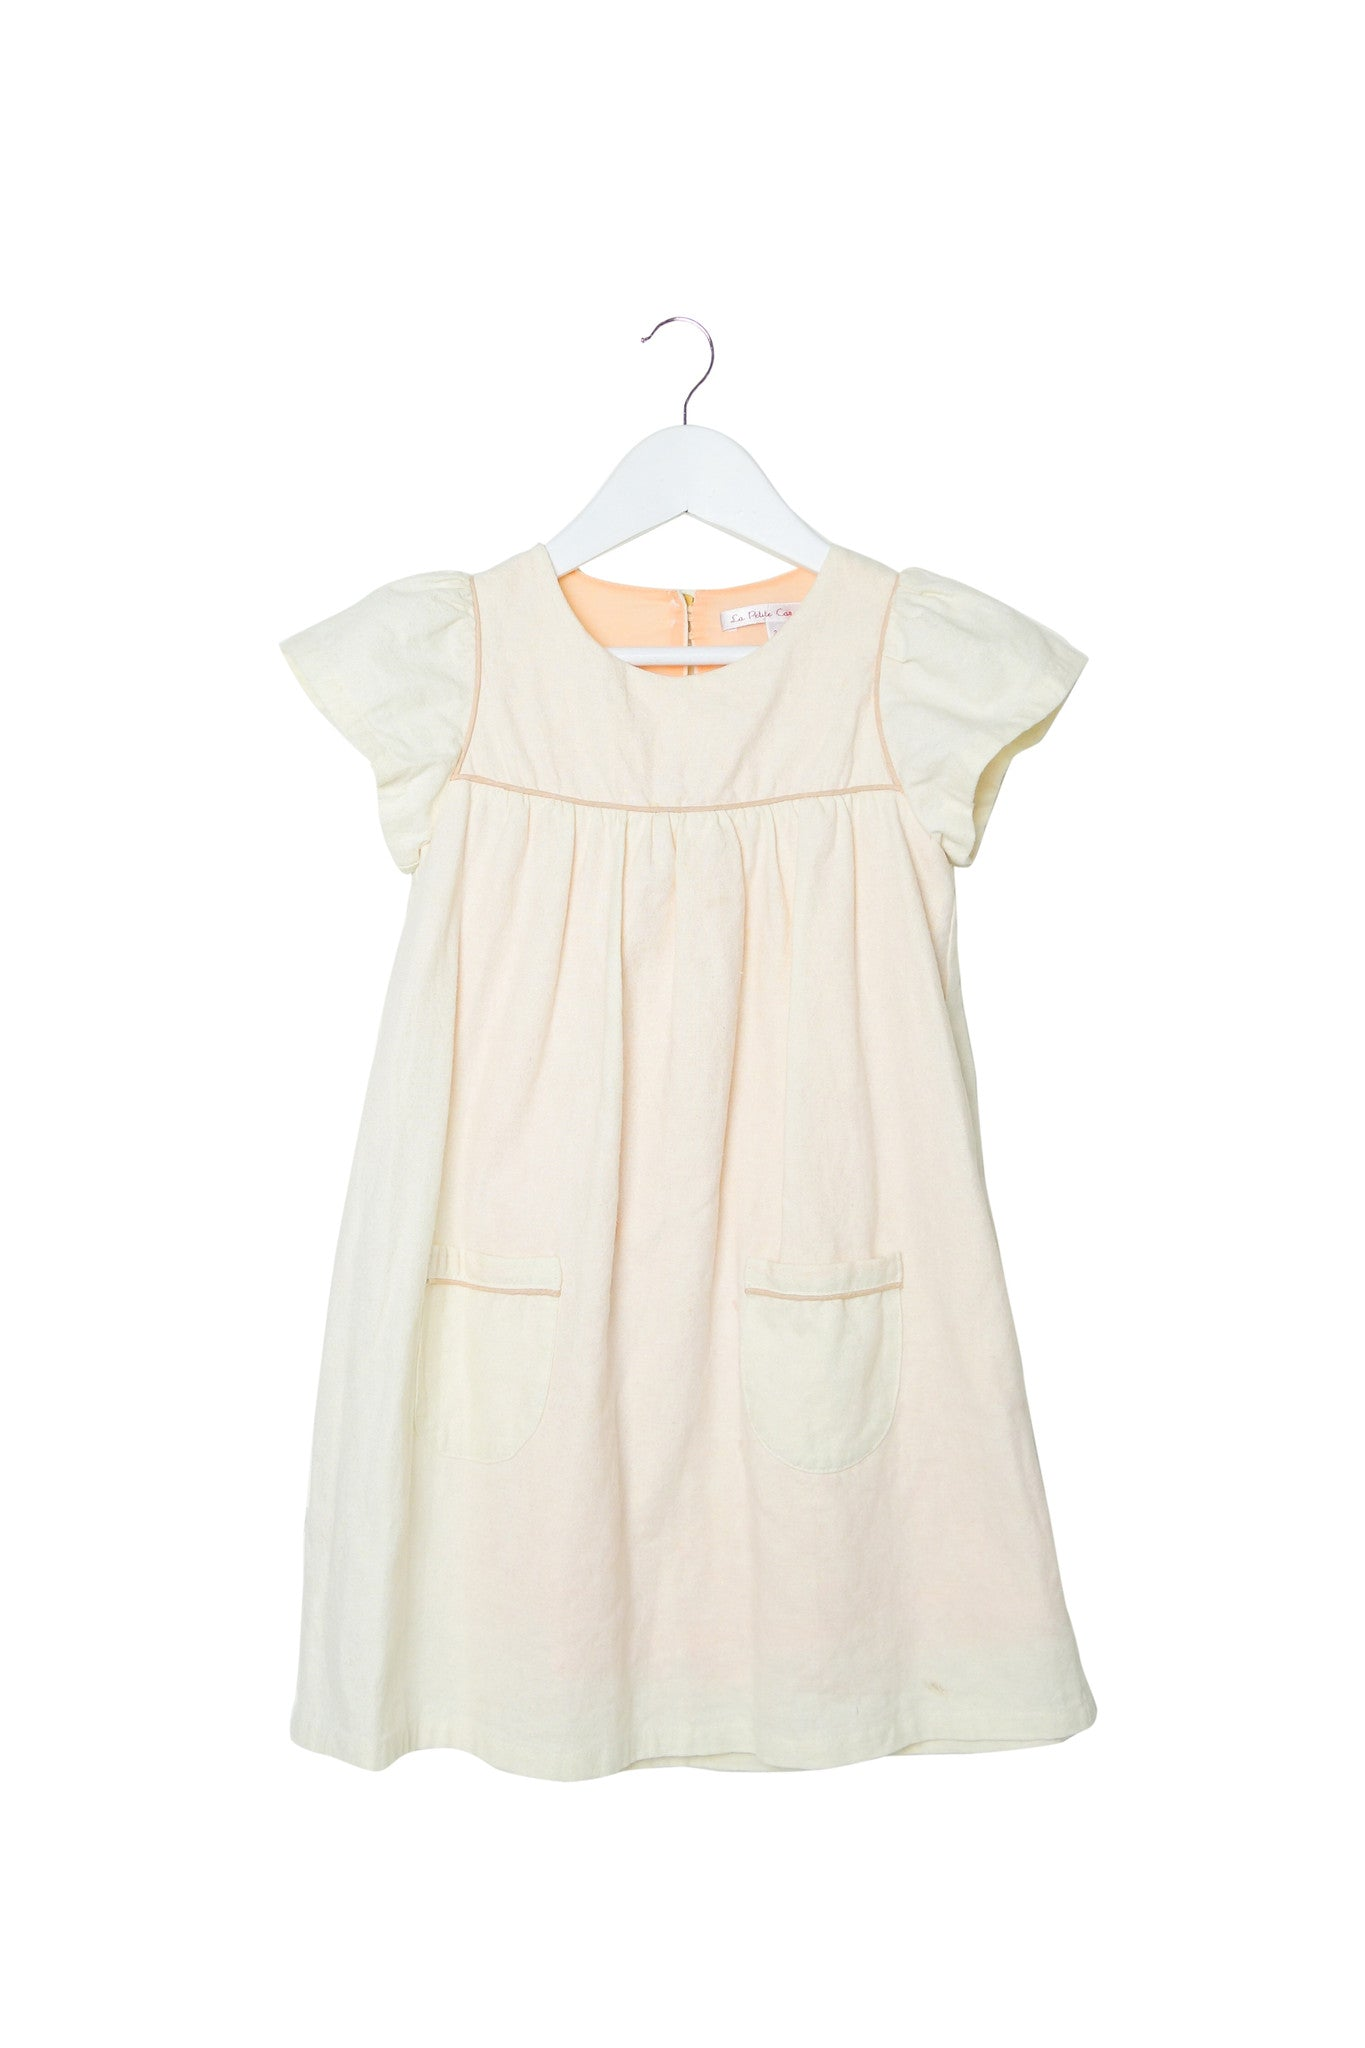 10002660 La Petite Caravane Kids~Dress 3-4T at Retykle